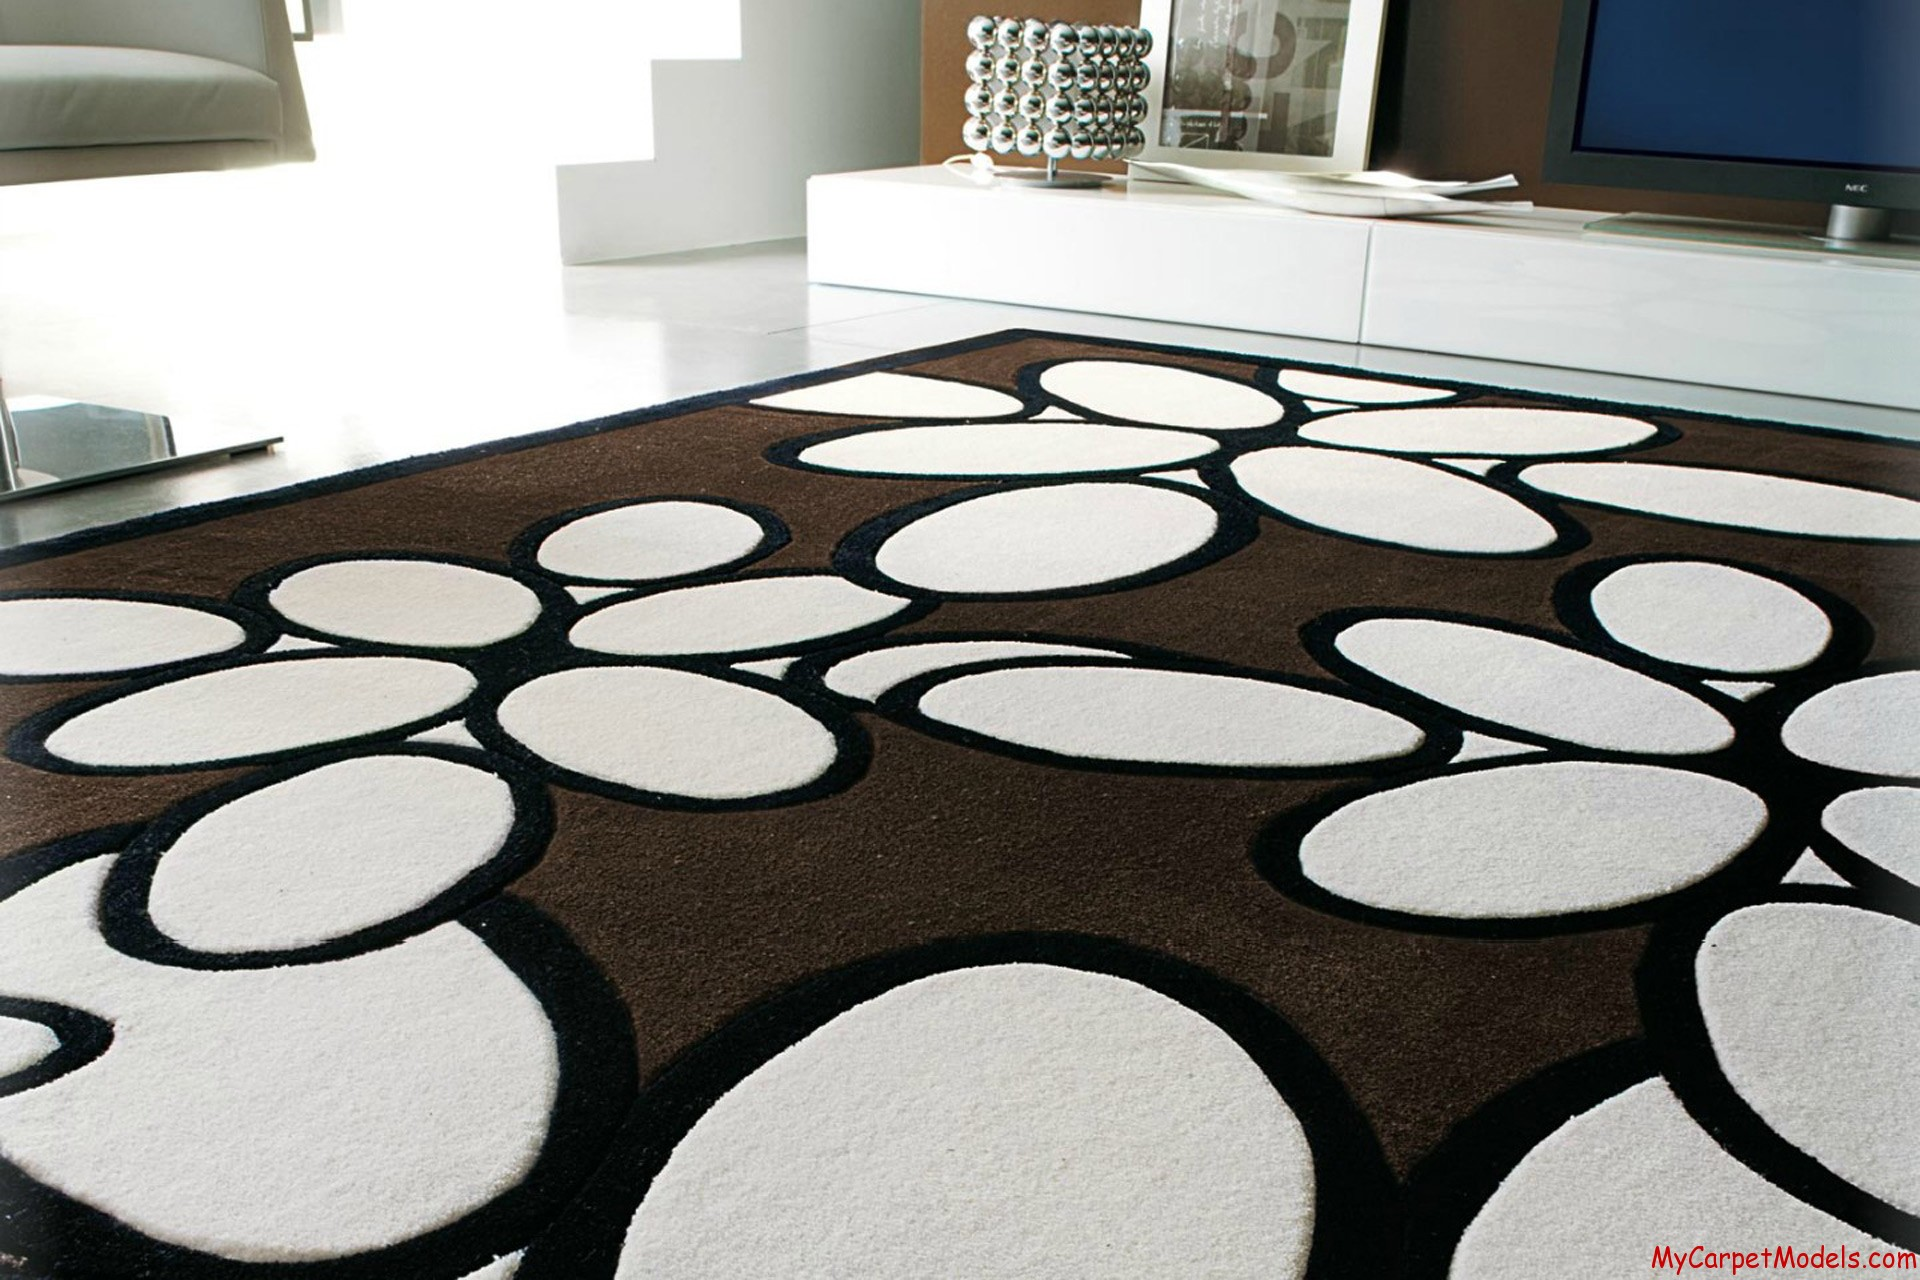 carpet design modern ... imposing modern carpet design for living room ideas ... QKQODDX